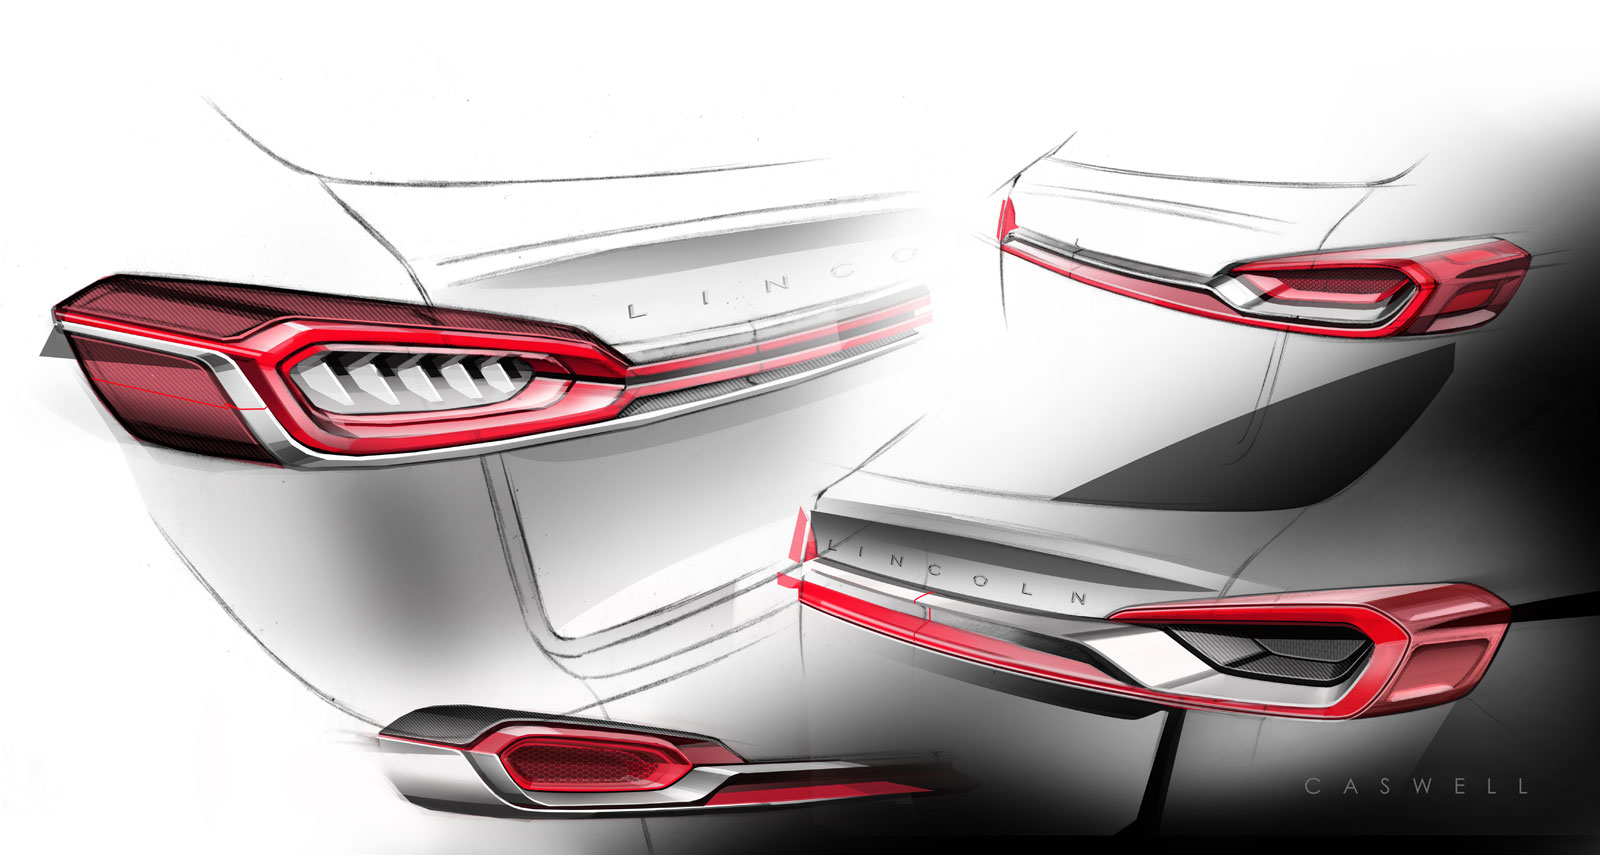 Lincoln MKX Concept - Tail Lamp ideation design sketches - Car Body Design